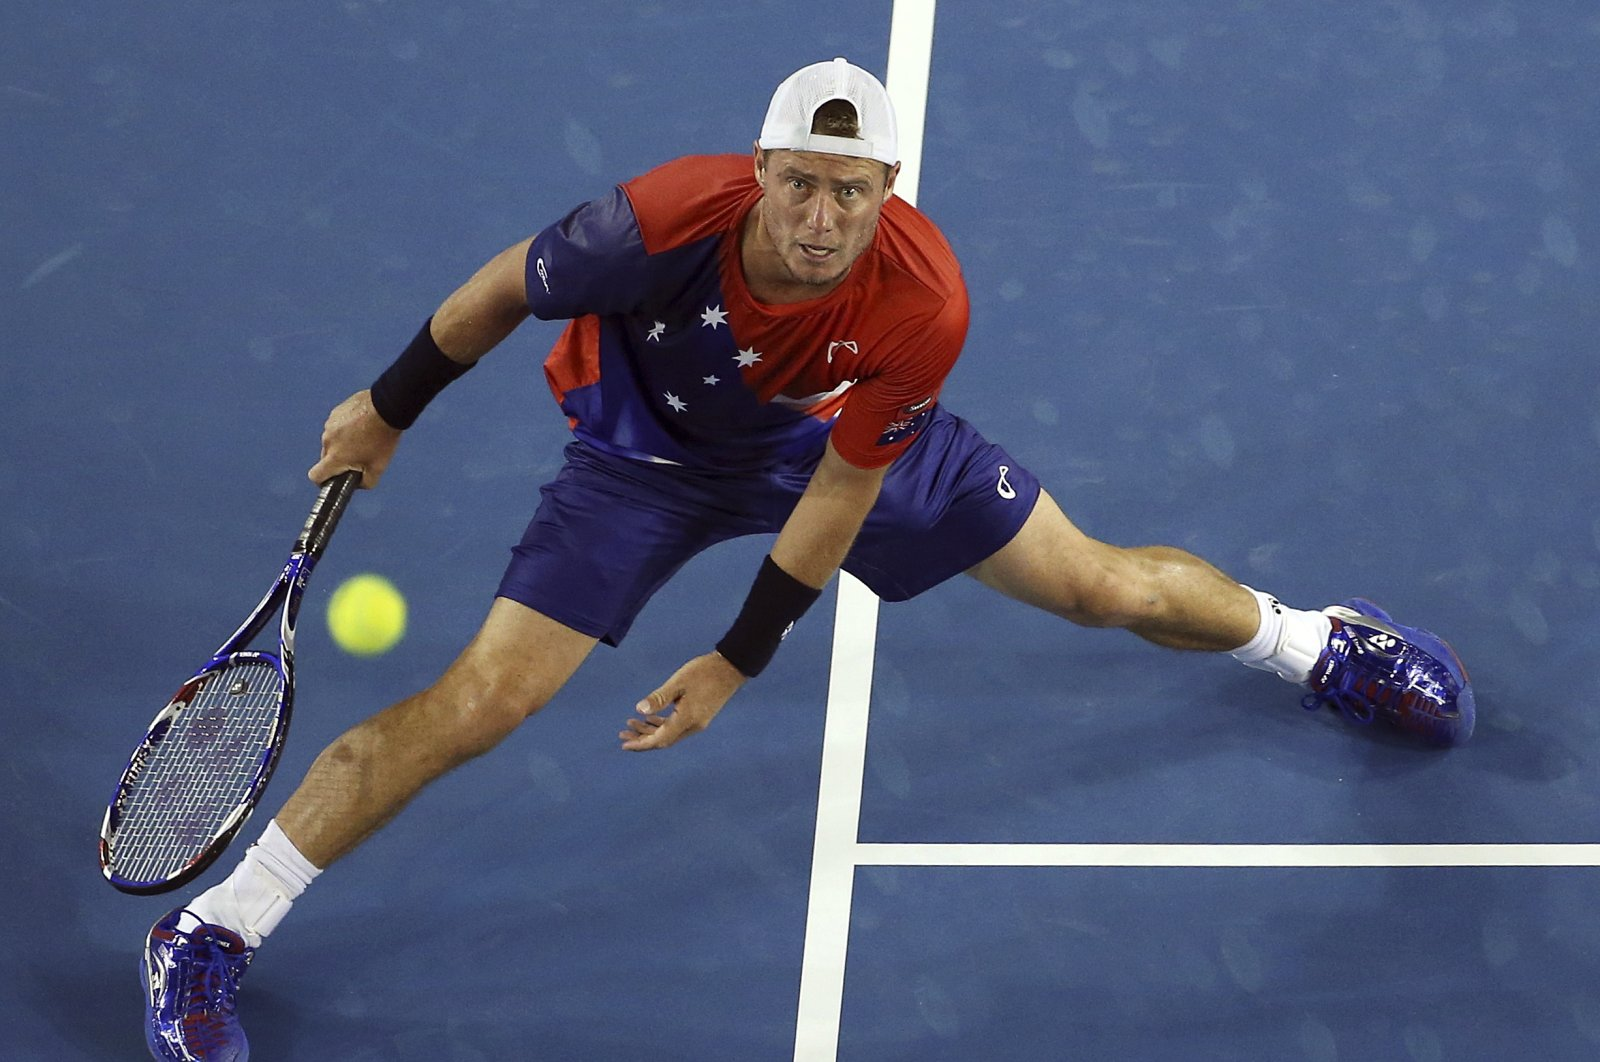 Australia's Lleyton Hewitt stretches for a shot during his first-round match against compatriot James Duckworth at the Australian Open tennis tournament at Melbourne Park, Australia, Jan. 19, 2016. (Reuters Photo)